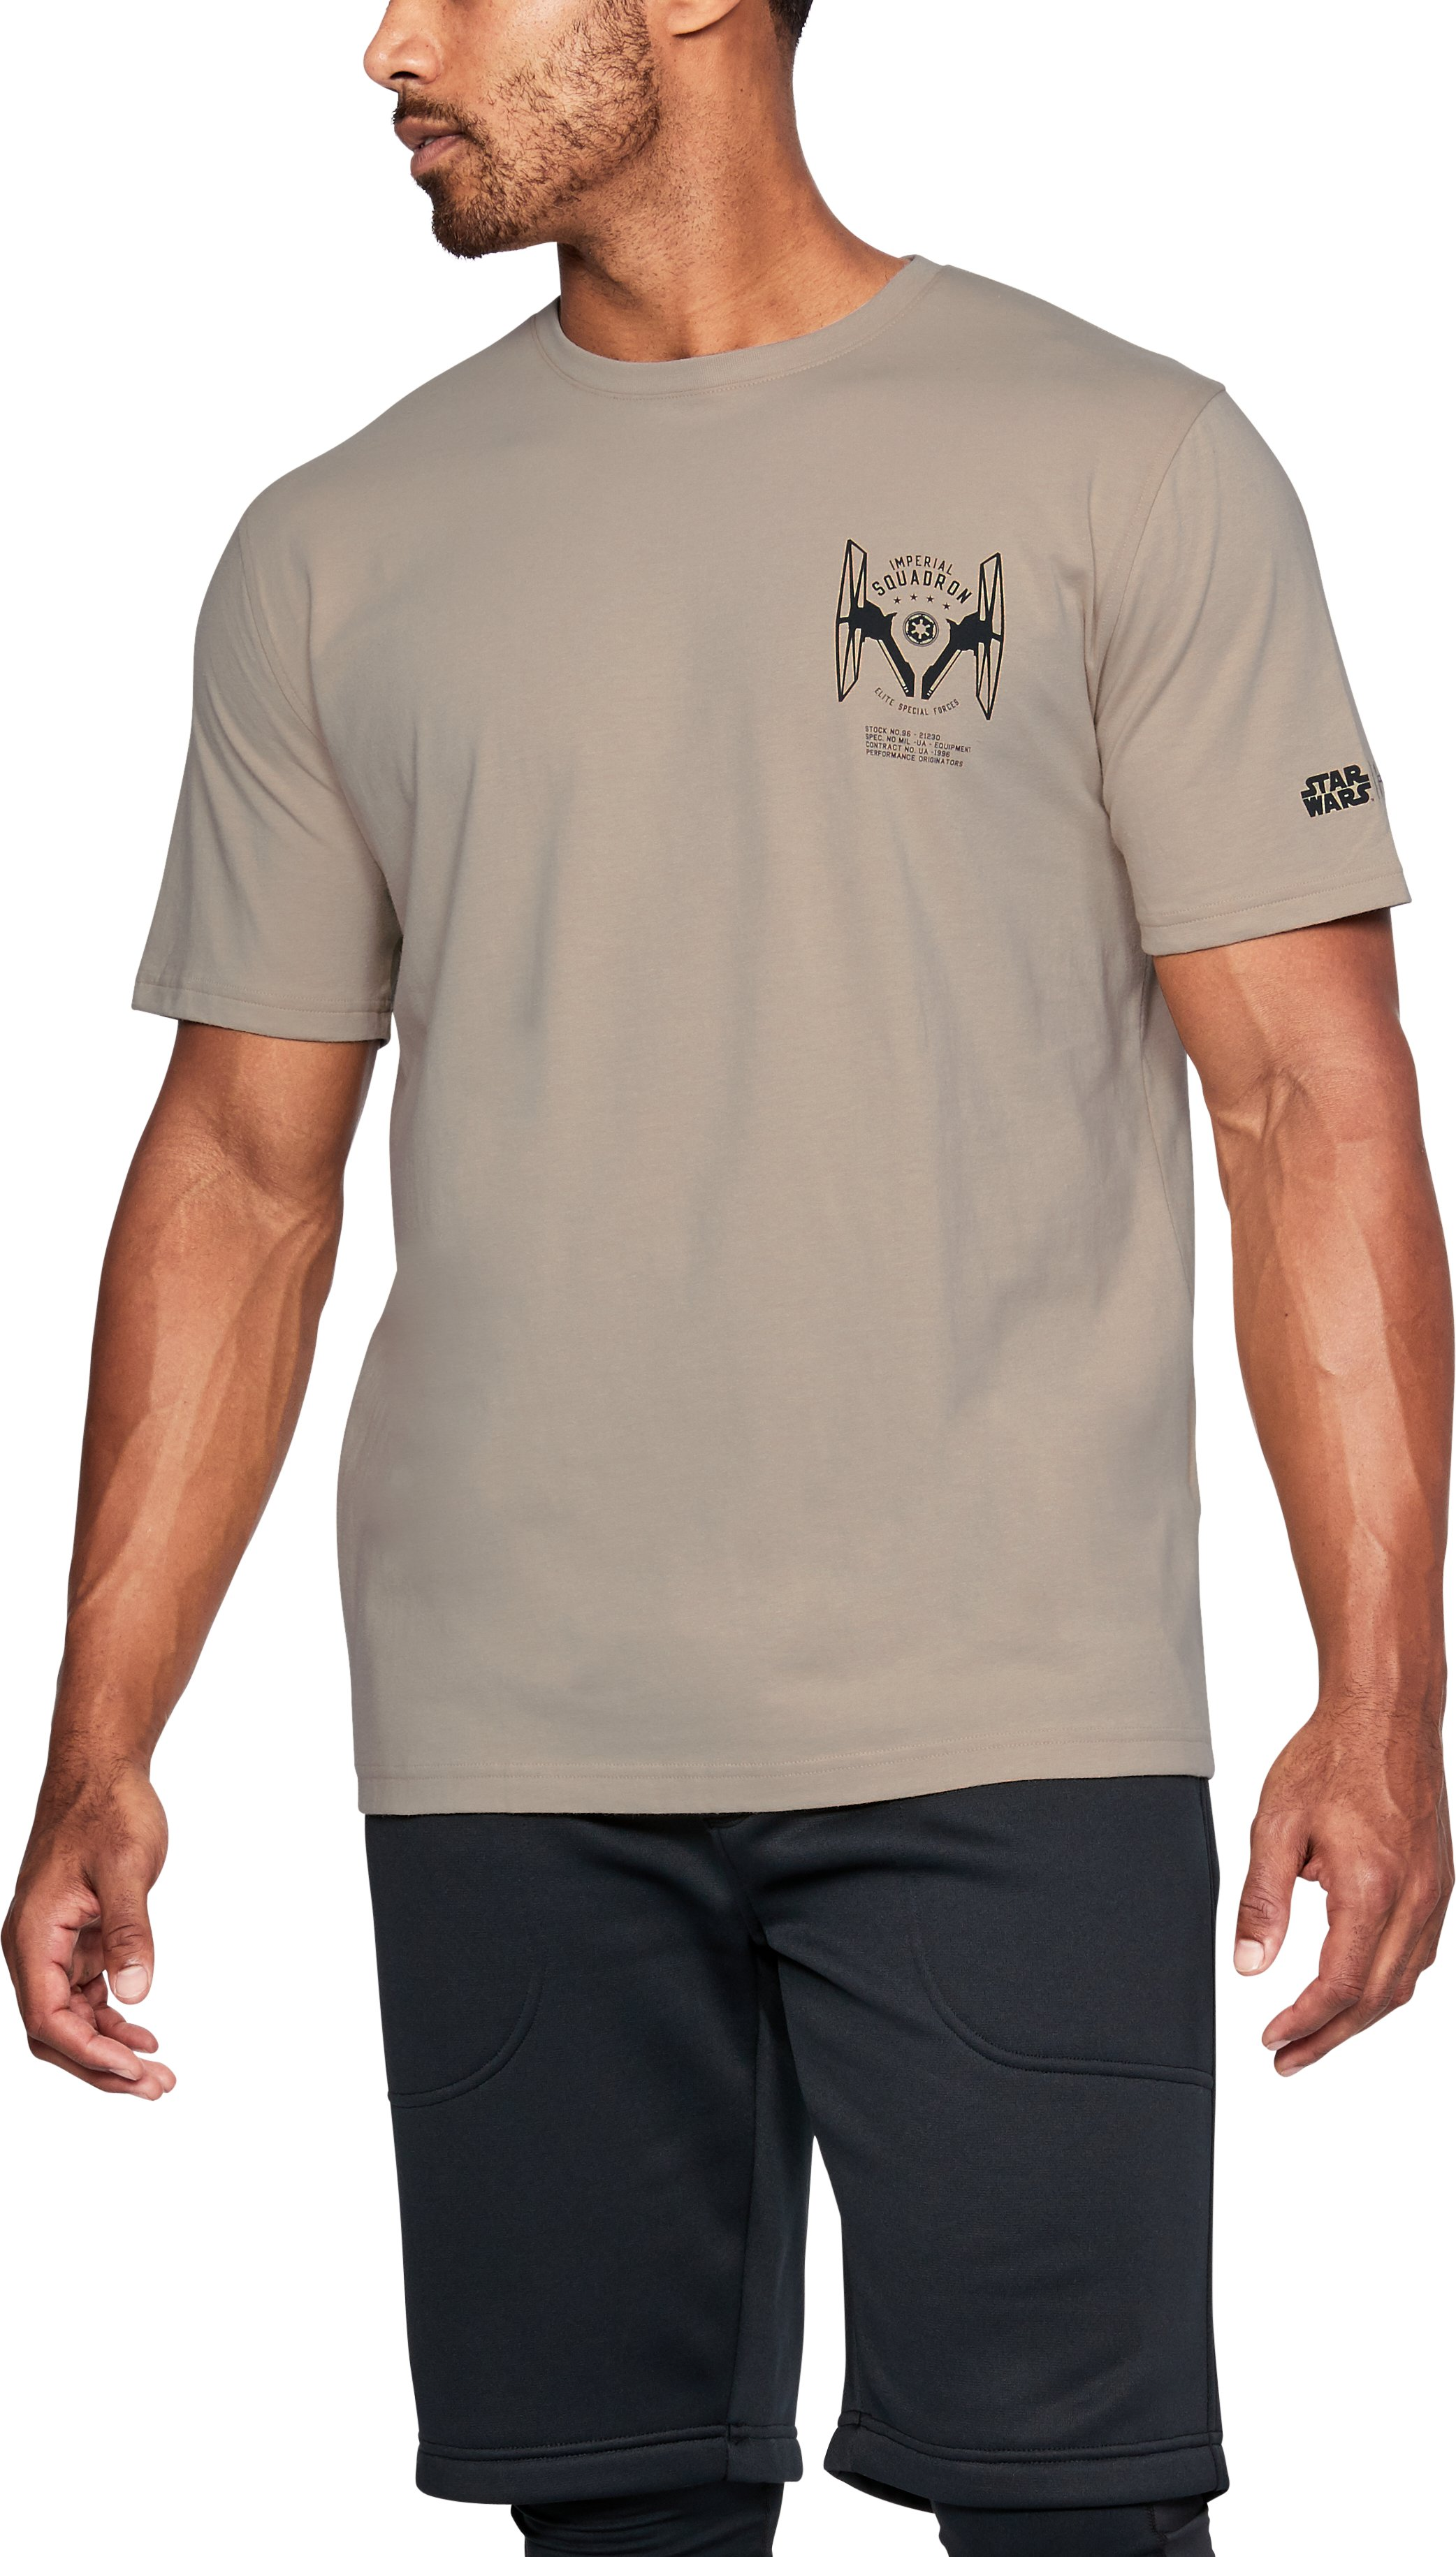 back to school t shirts Men's UA Star Wars Trooper Back T-Shirt Great design, really like the sand color....This shirt fit great around the arms and shoulders....Comfortable, great fit